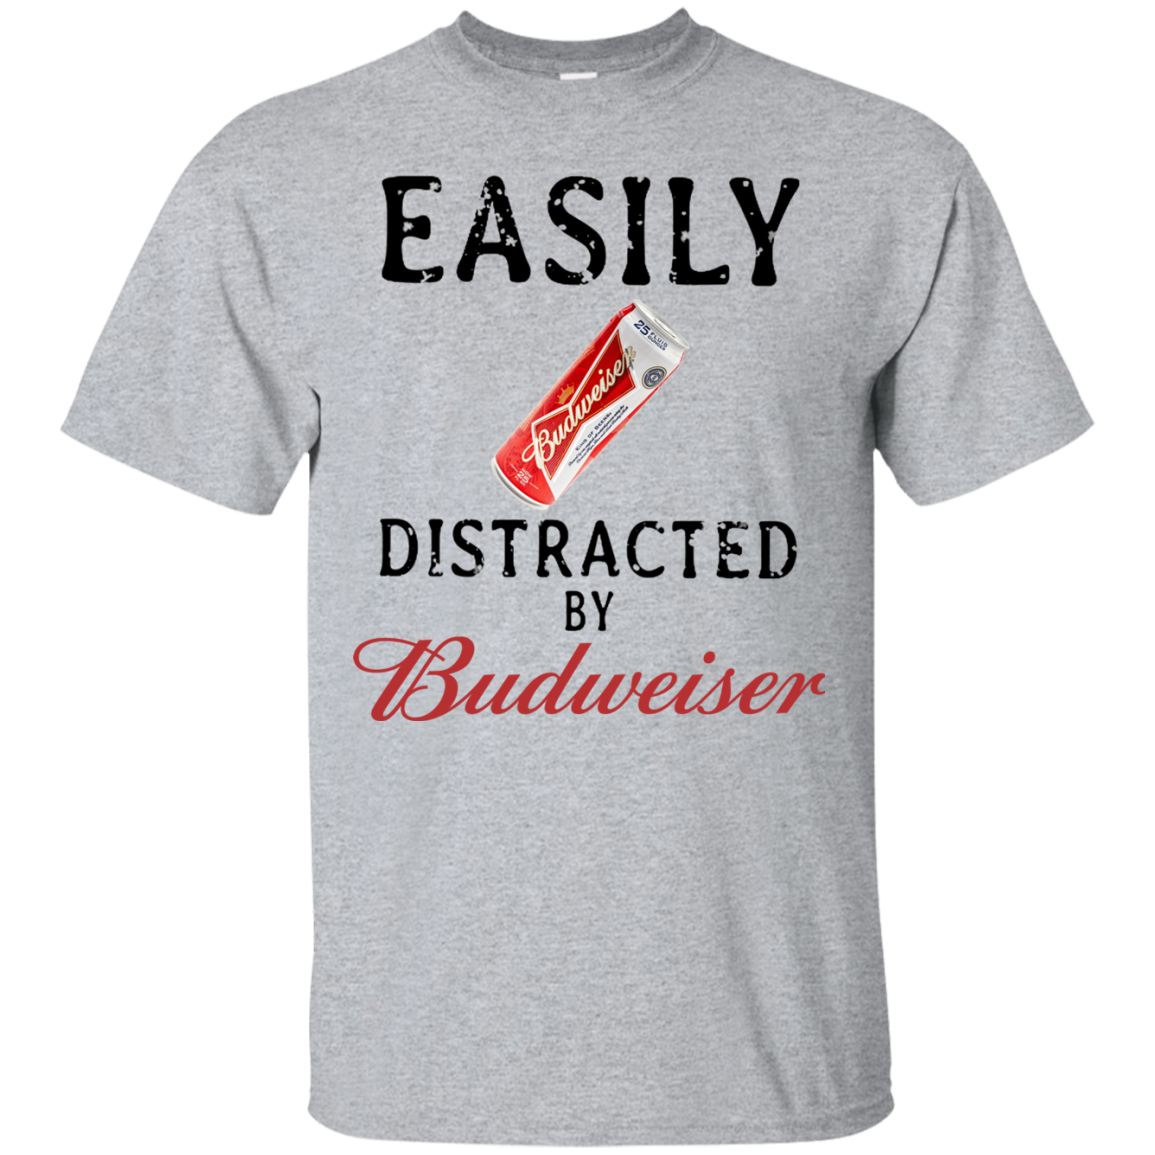 624acfc53 Easily distracted by Budweiser T shirt hoodie sweater Men - Alottee